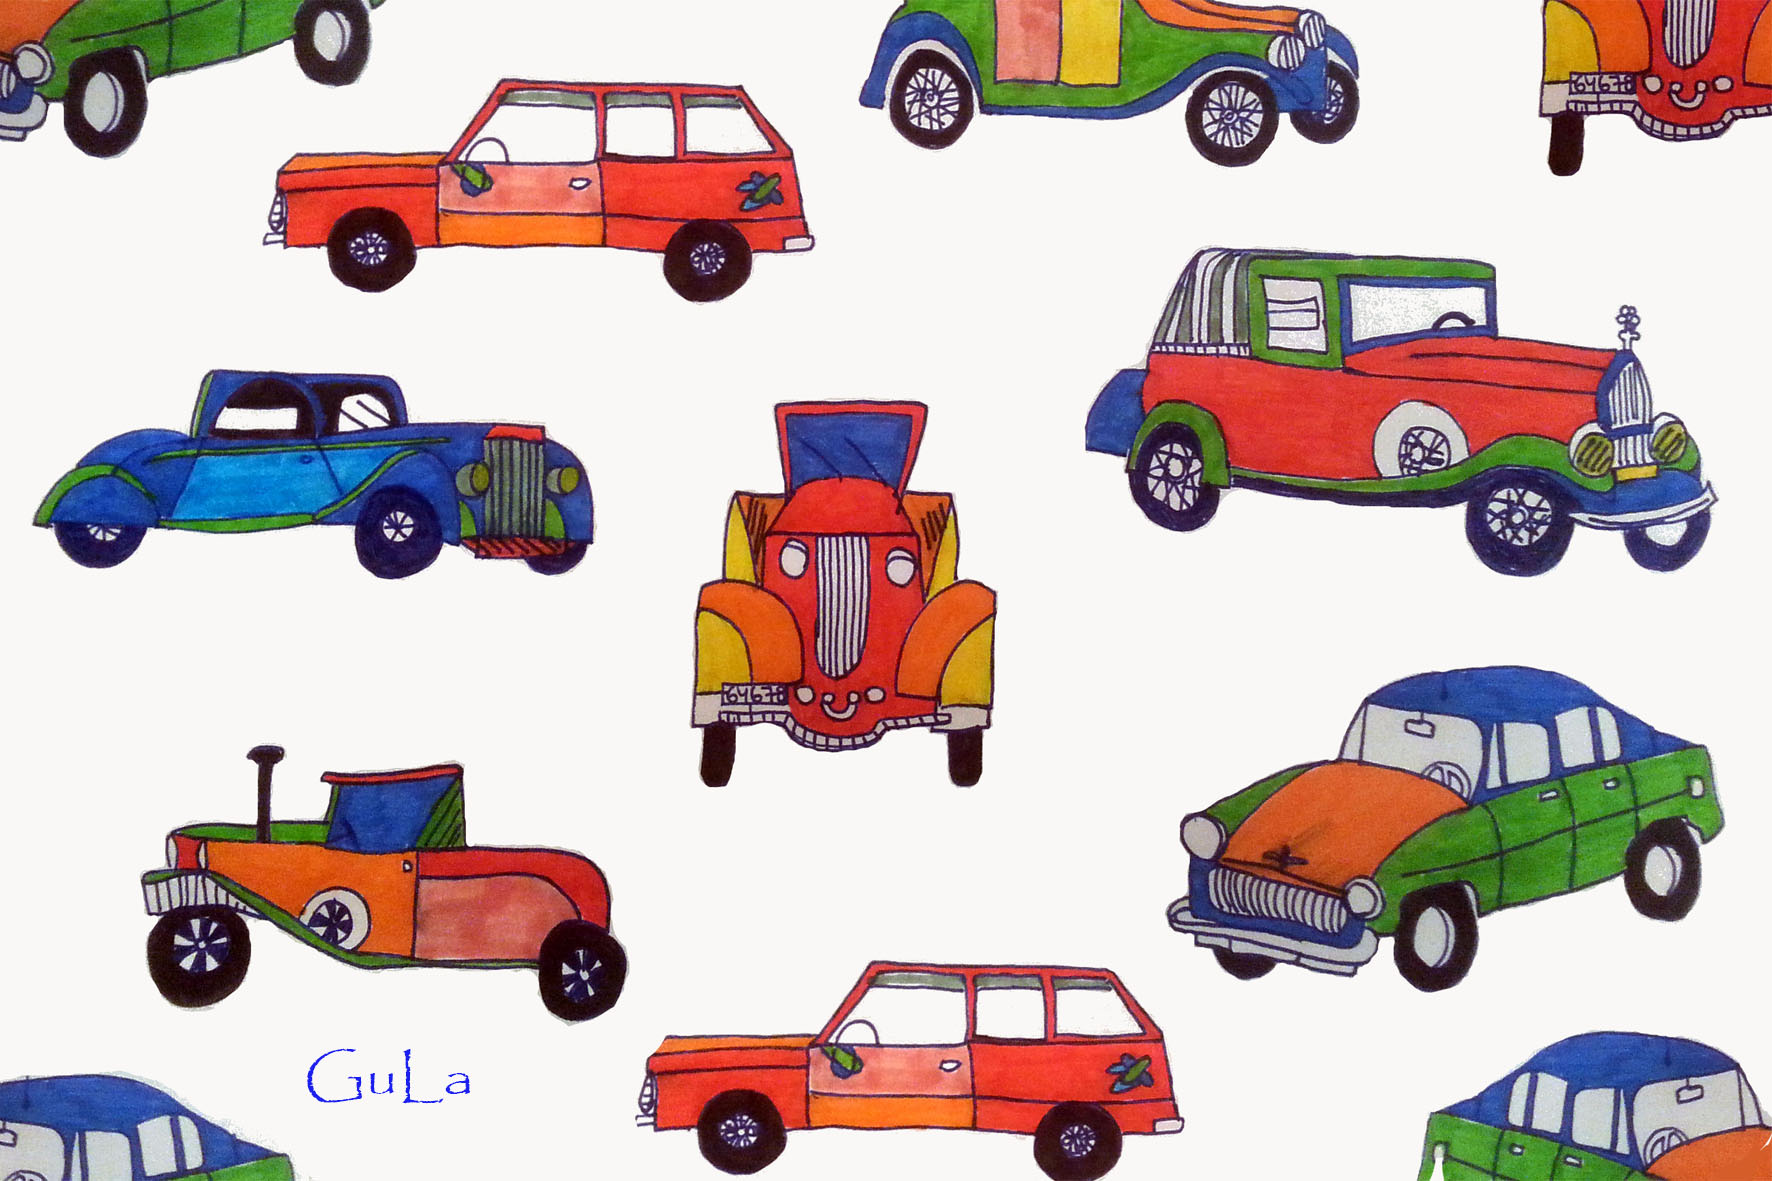 gula designs cars :)